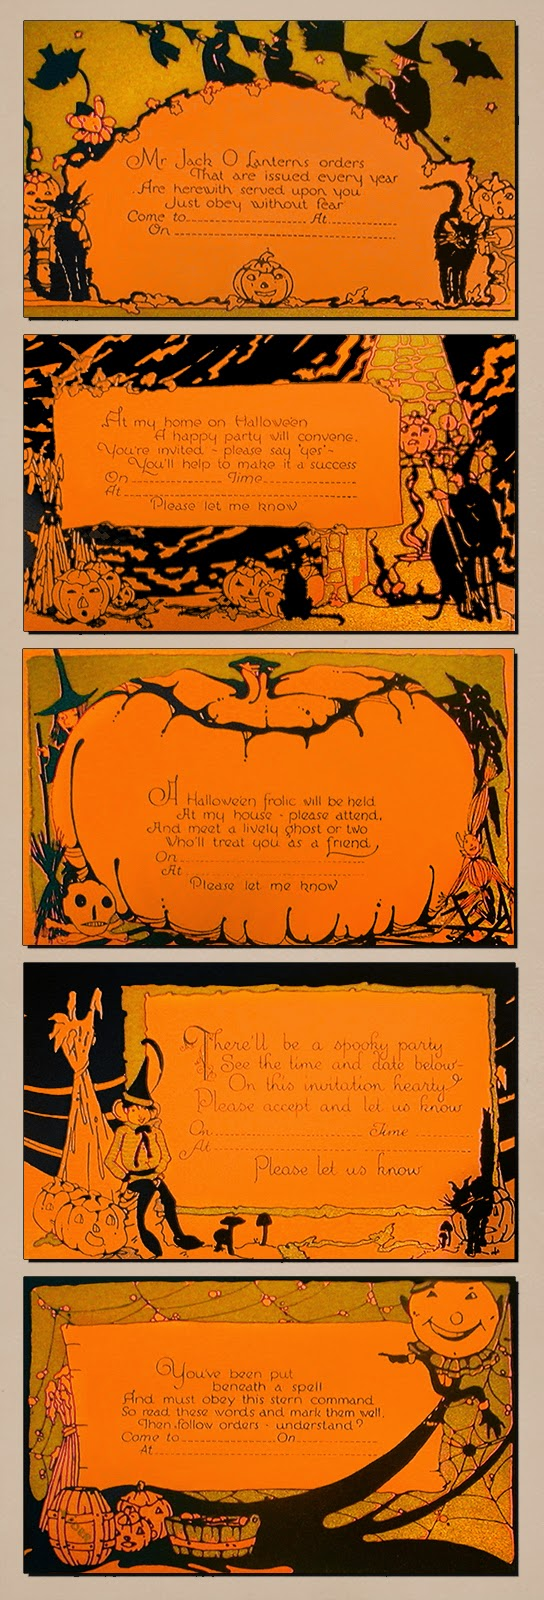 Witches, cats, skull, elf, and moon on illustrated Halloween poem cards likely by Whitney